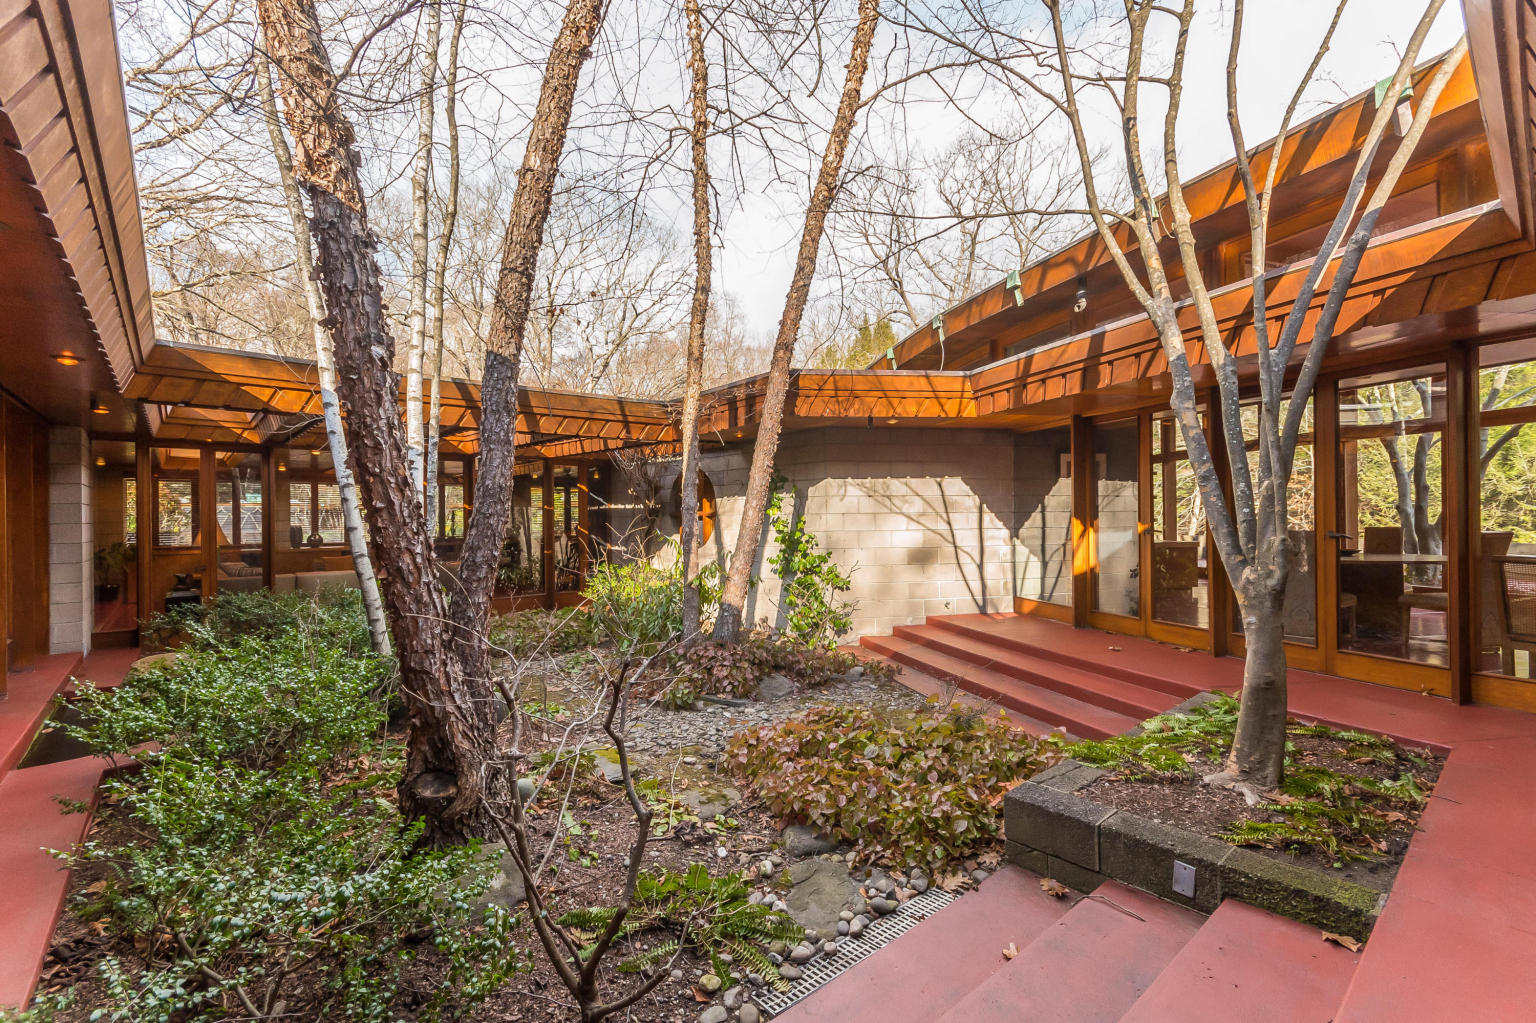 frank loyd write Architecture tours of frank lloyd wright sites in oak park and chicago: home and studio, robie house, unity temple, the rookery, bach house, and the annual wright plus housewalk.